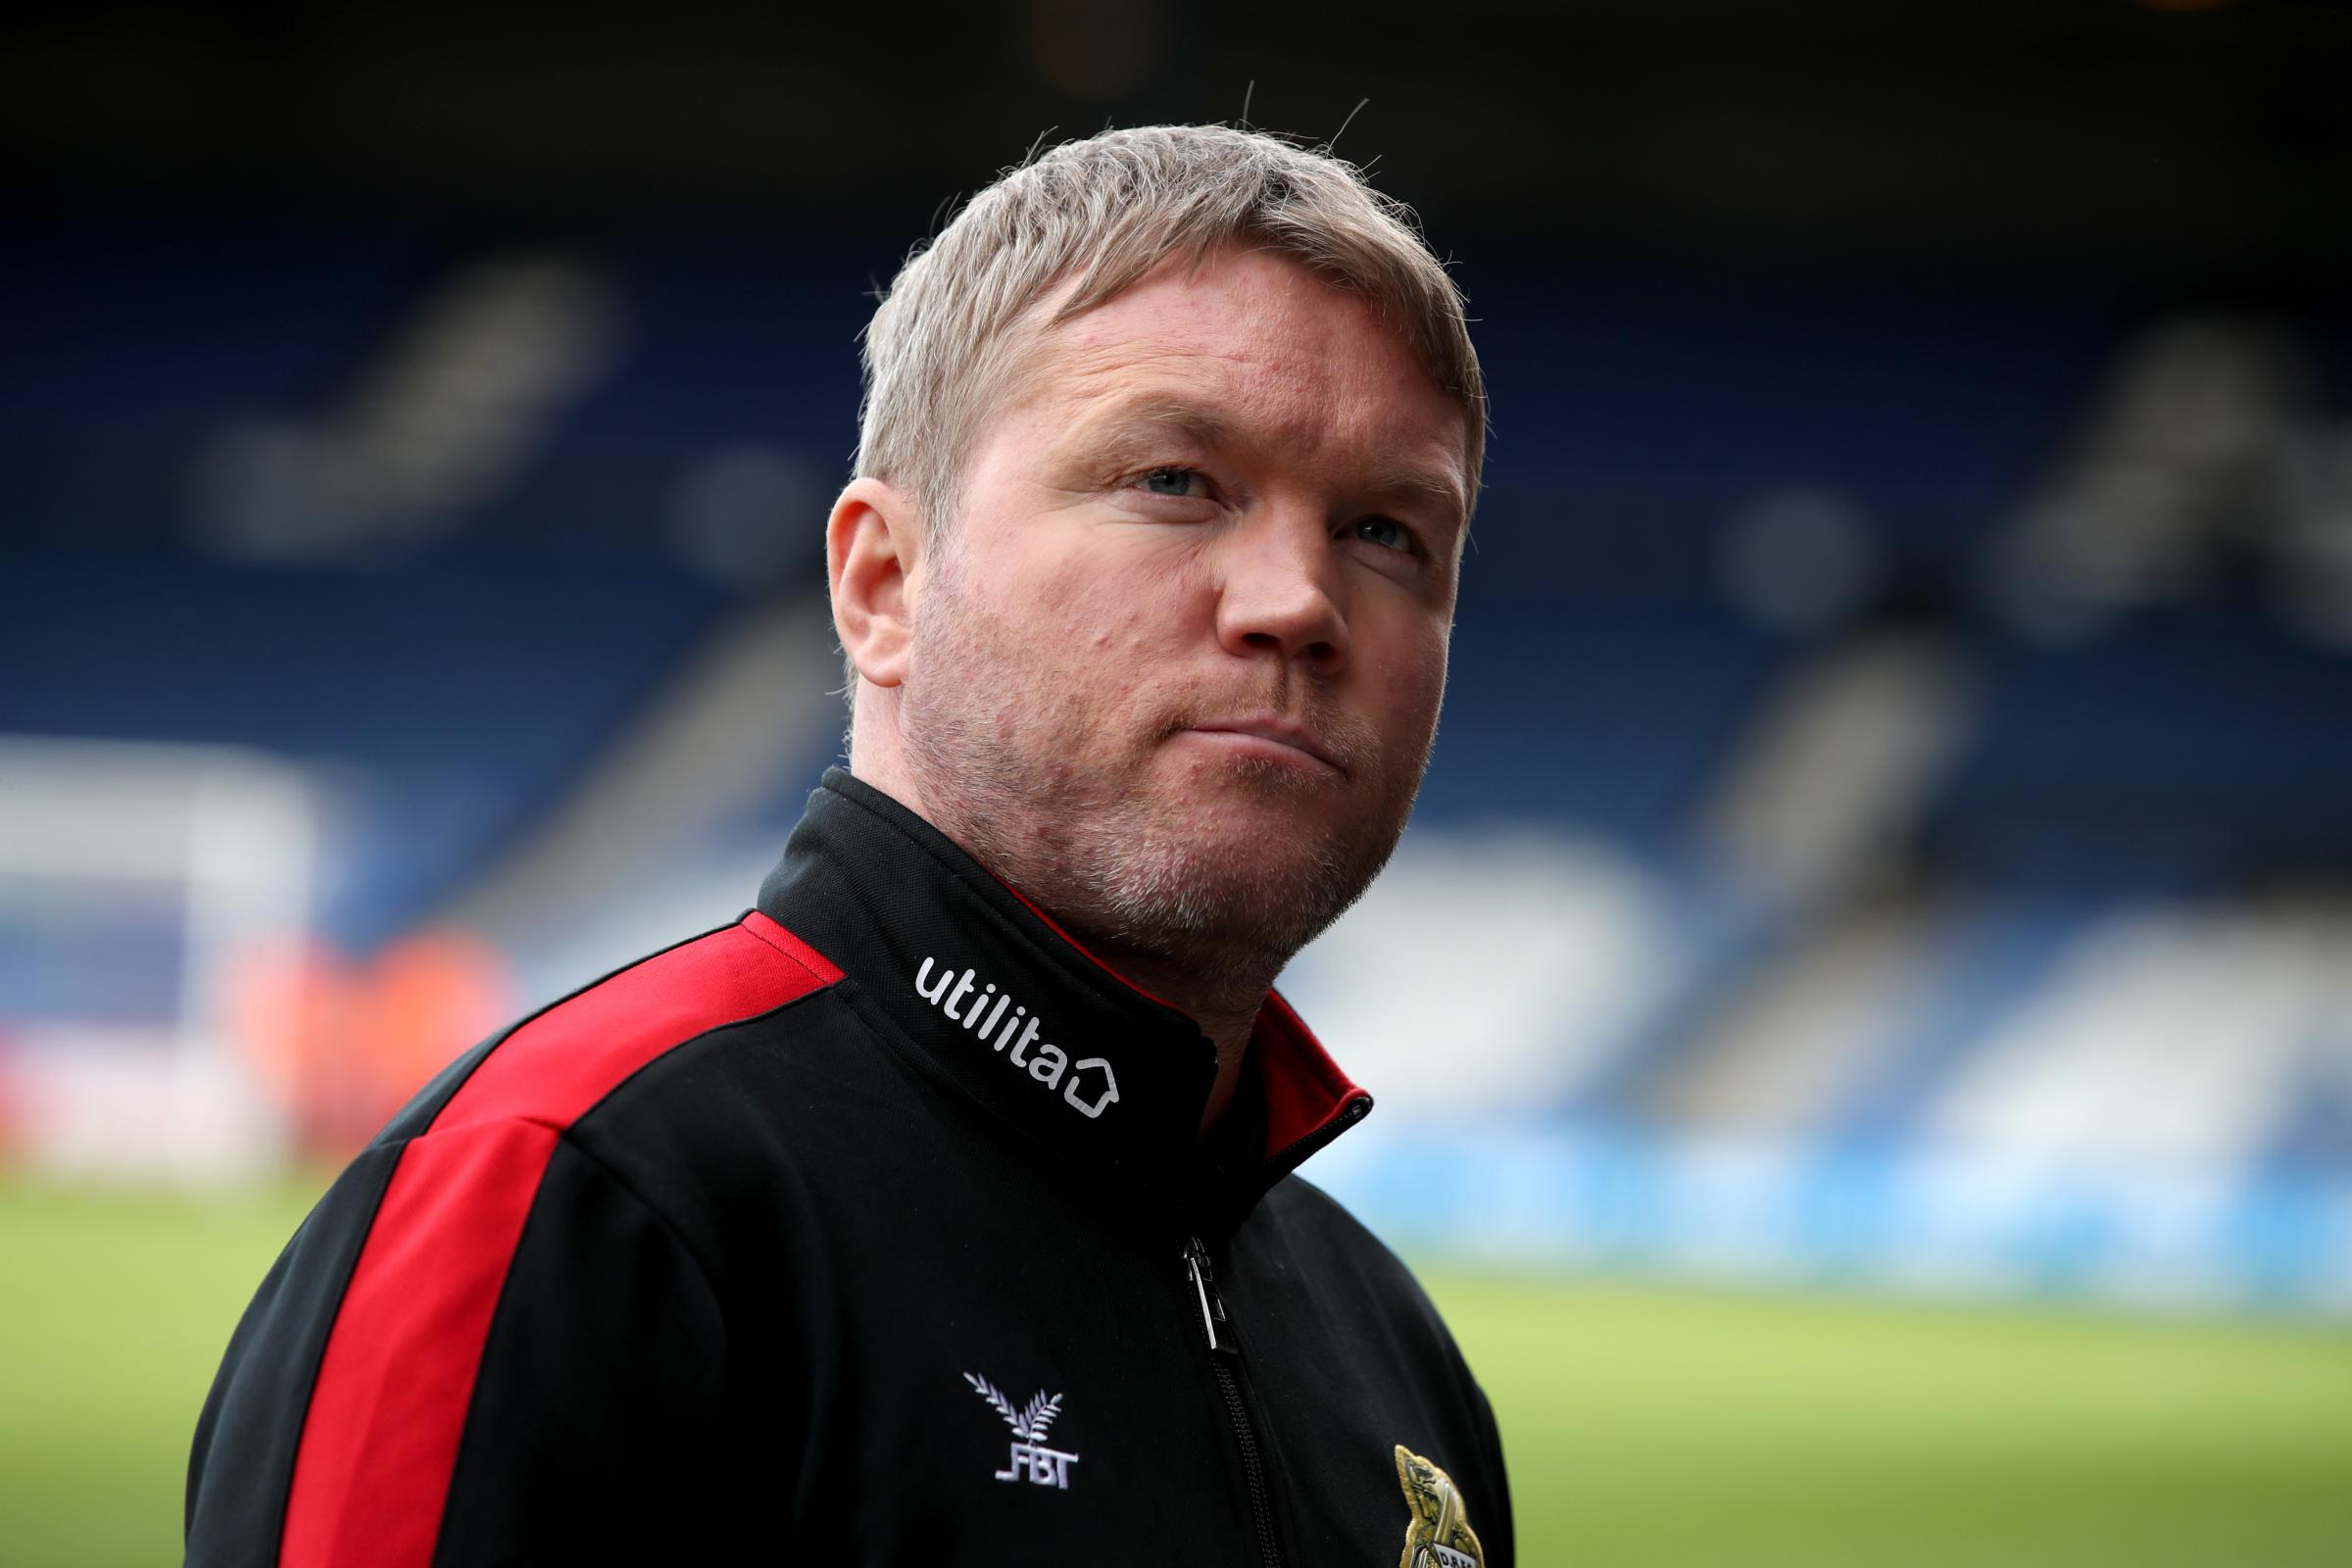 Doncaster Rovers boss Grant McCann. Photo: PA